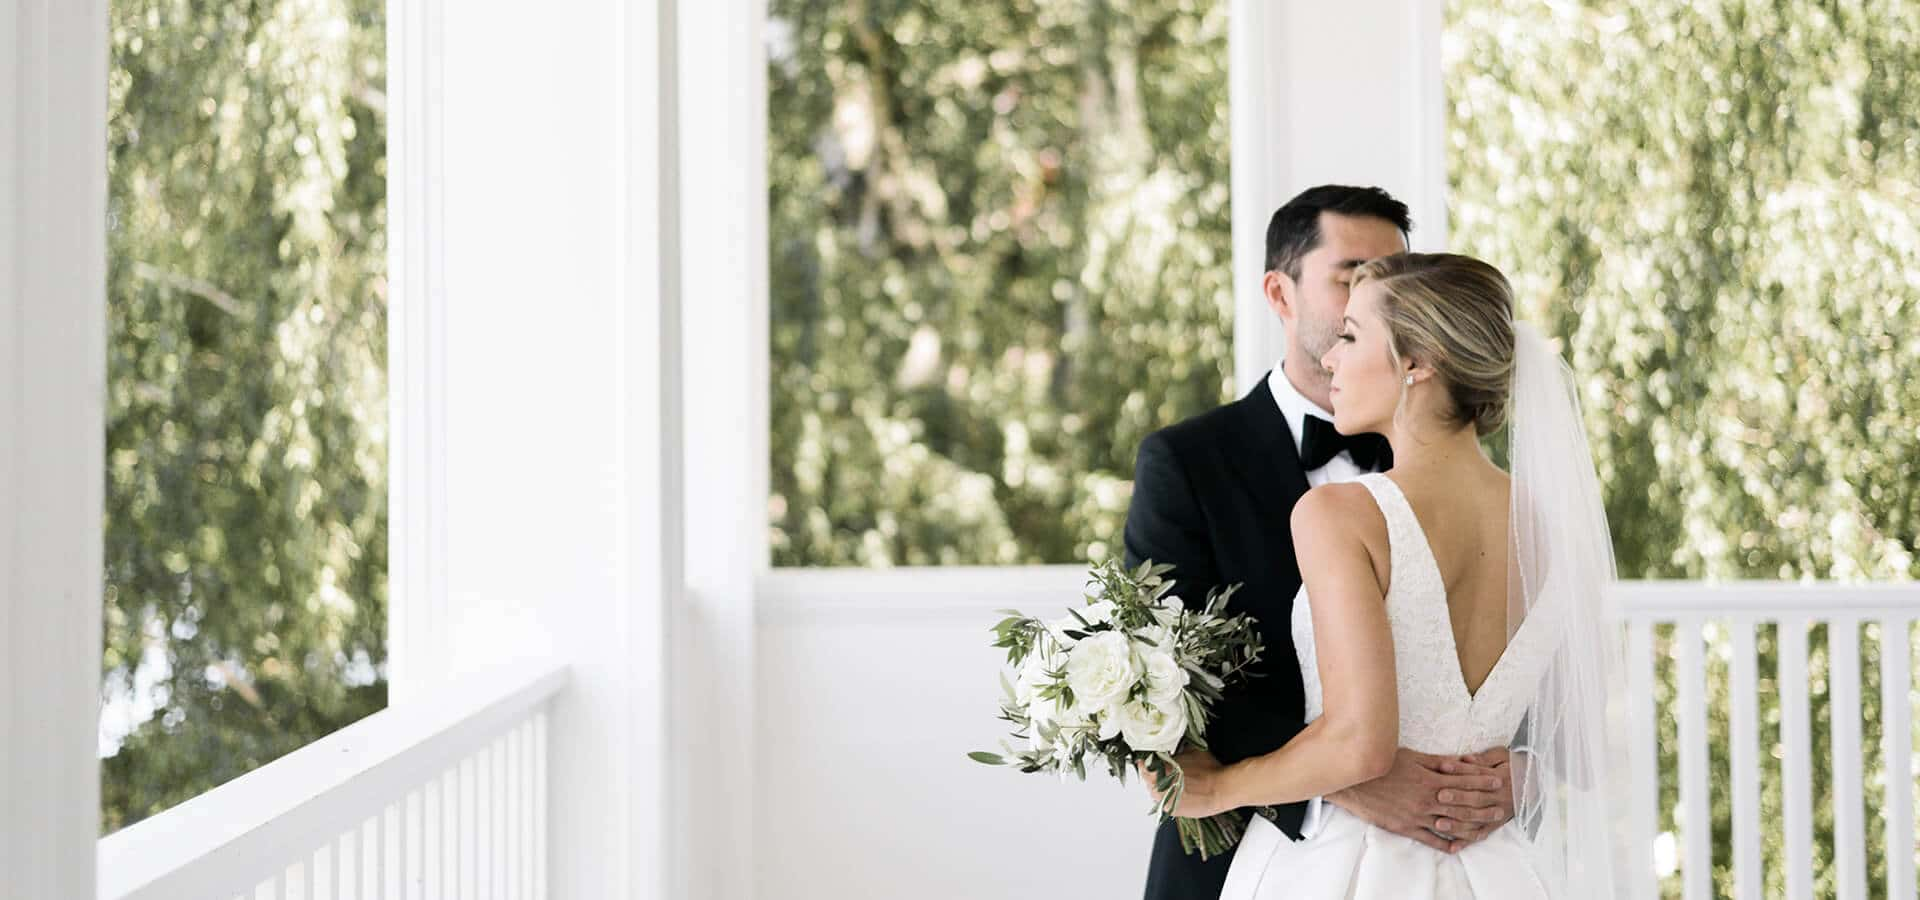 Hero image for Julie and Darren's Perfect Summer Wedding at the Royal Canadian Yacht Club